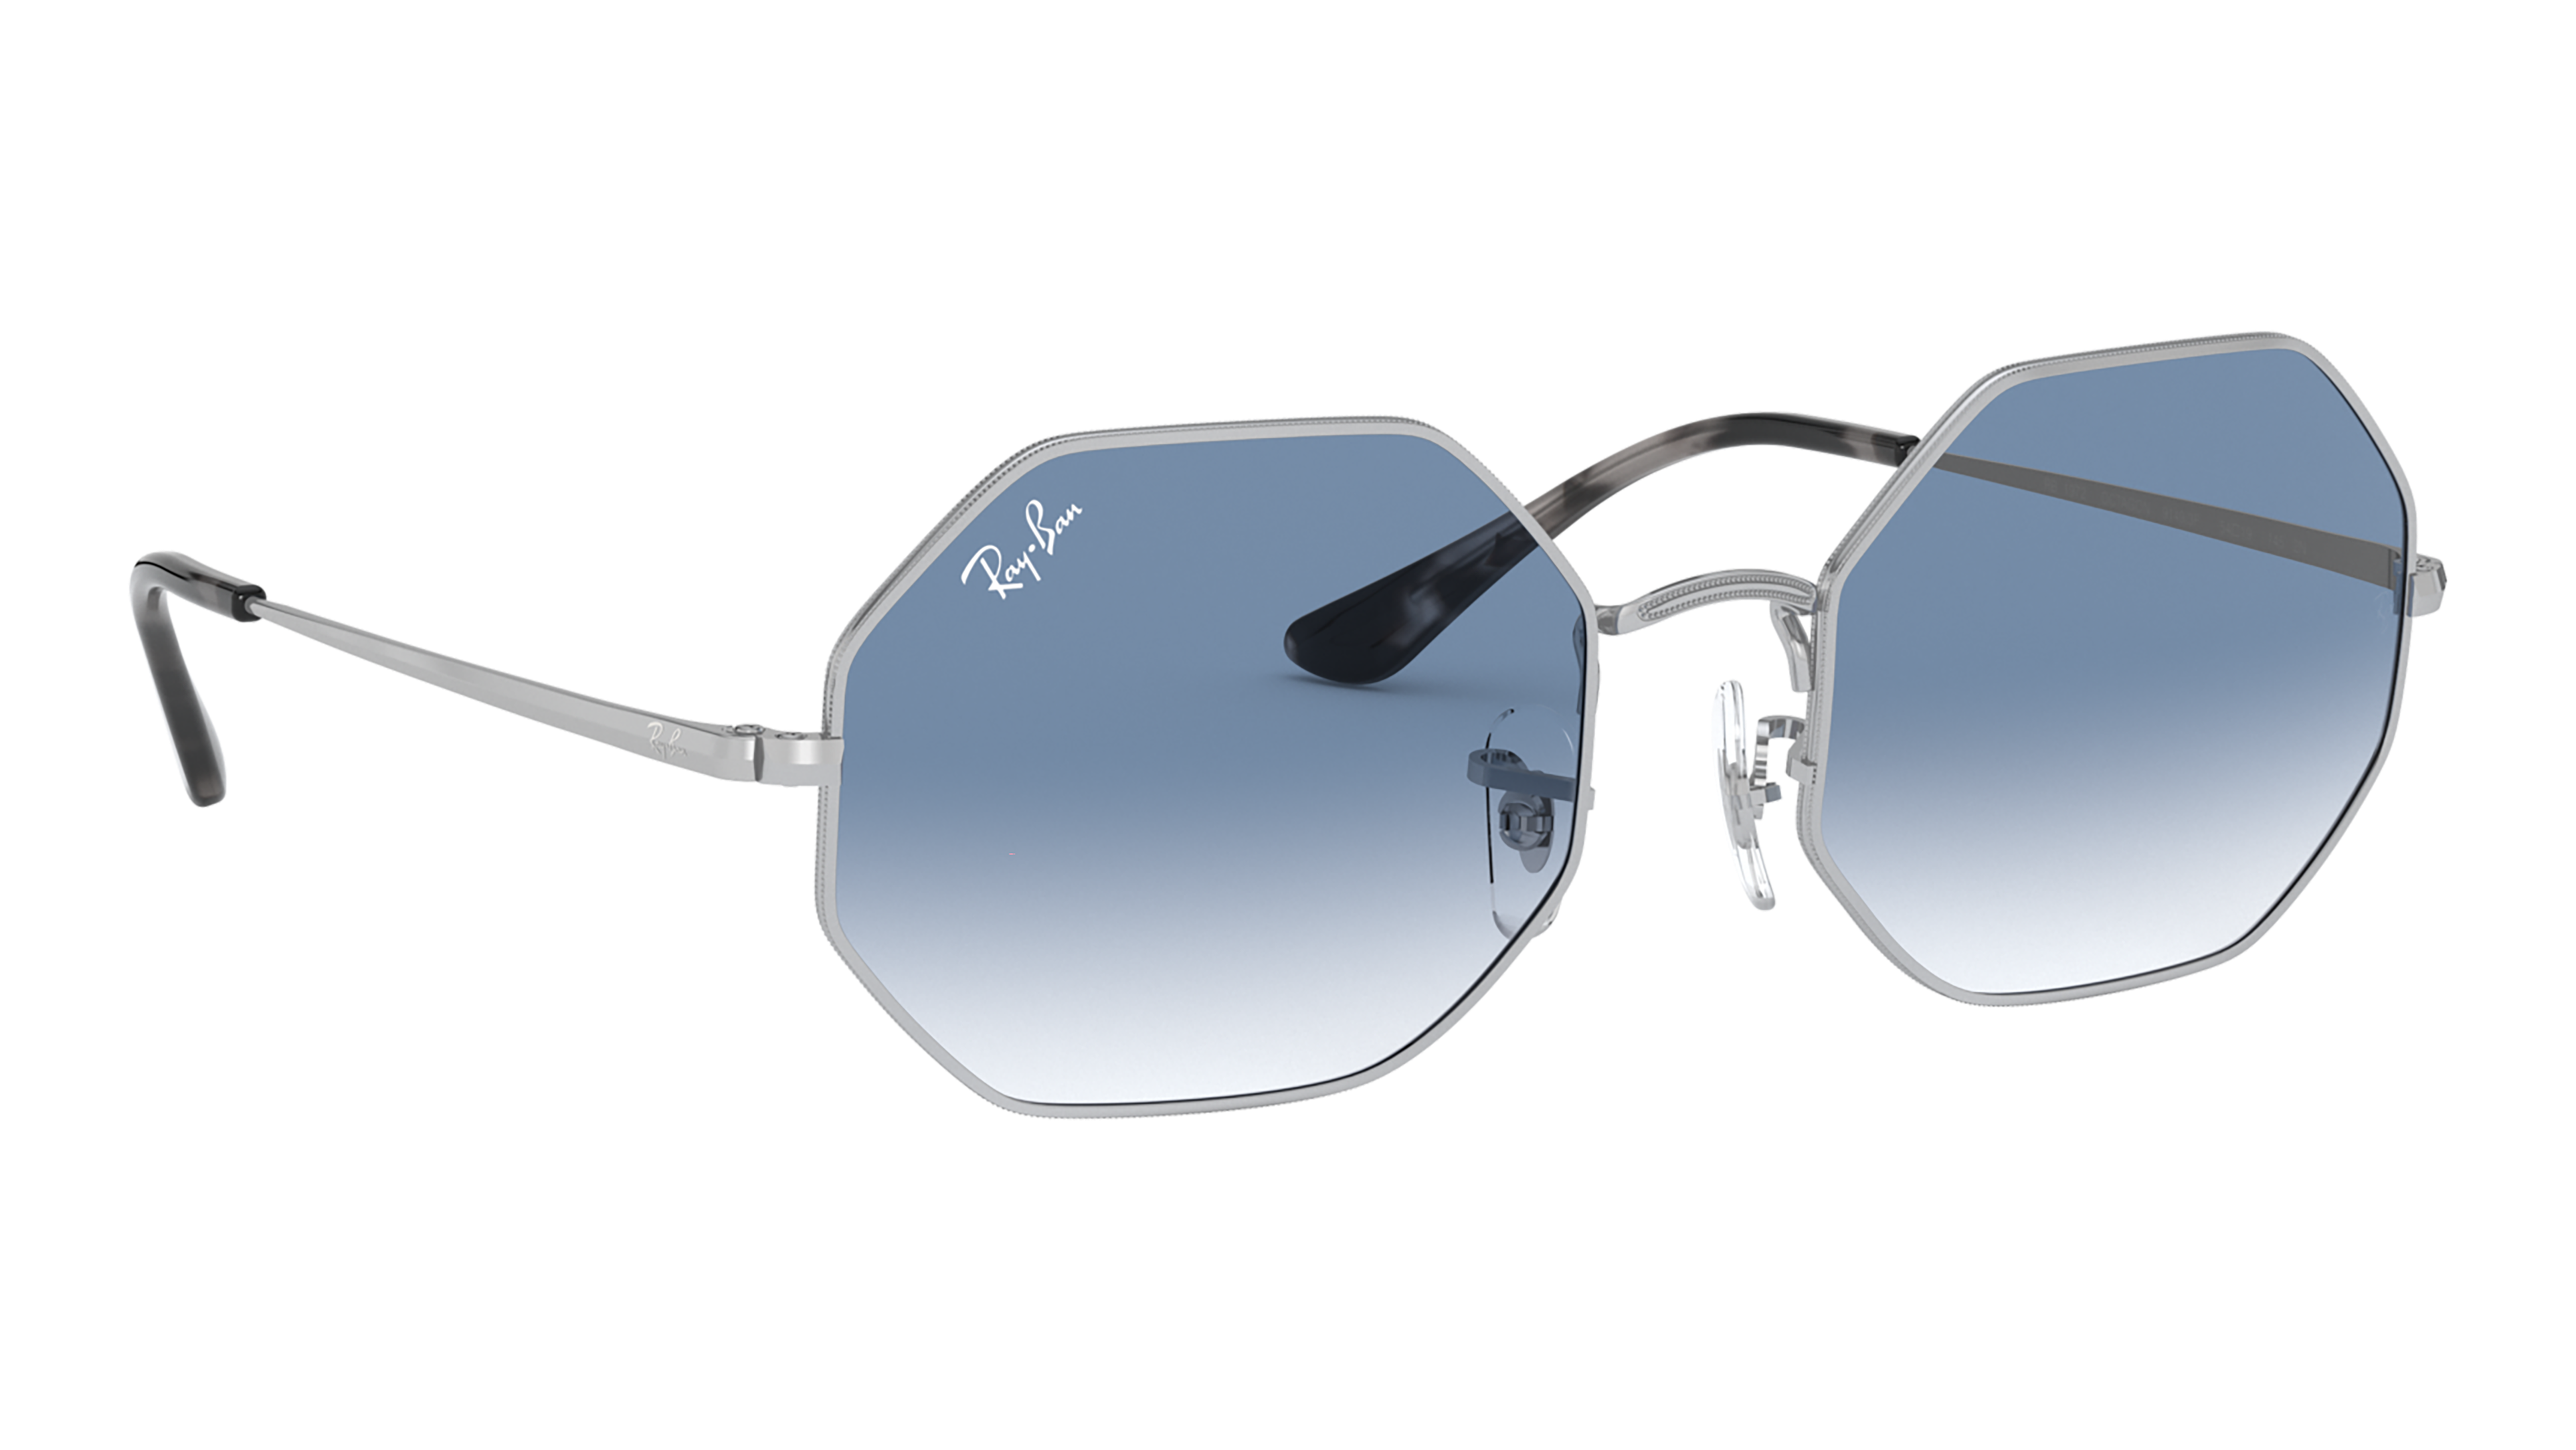 Angle_Right02 Ray-Ban Ray-Ban 0RB1972 91493F 54/19 Zilver/Blauw